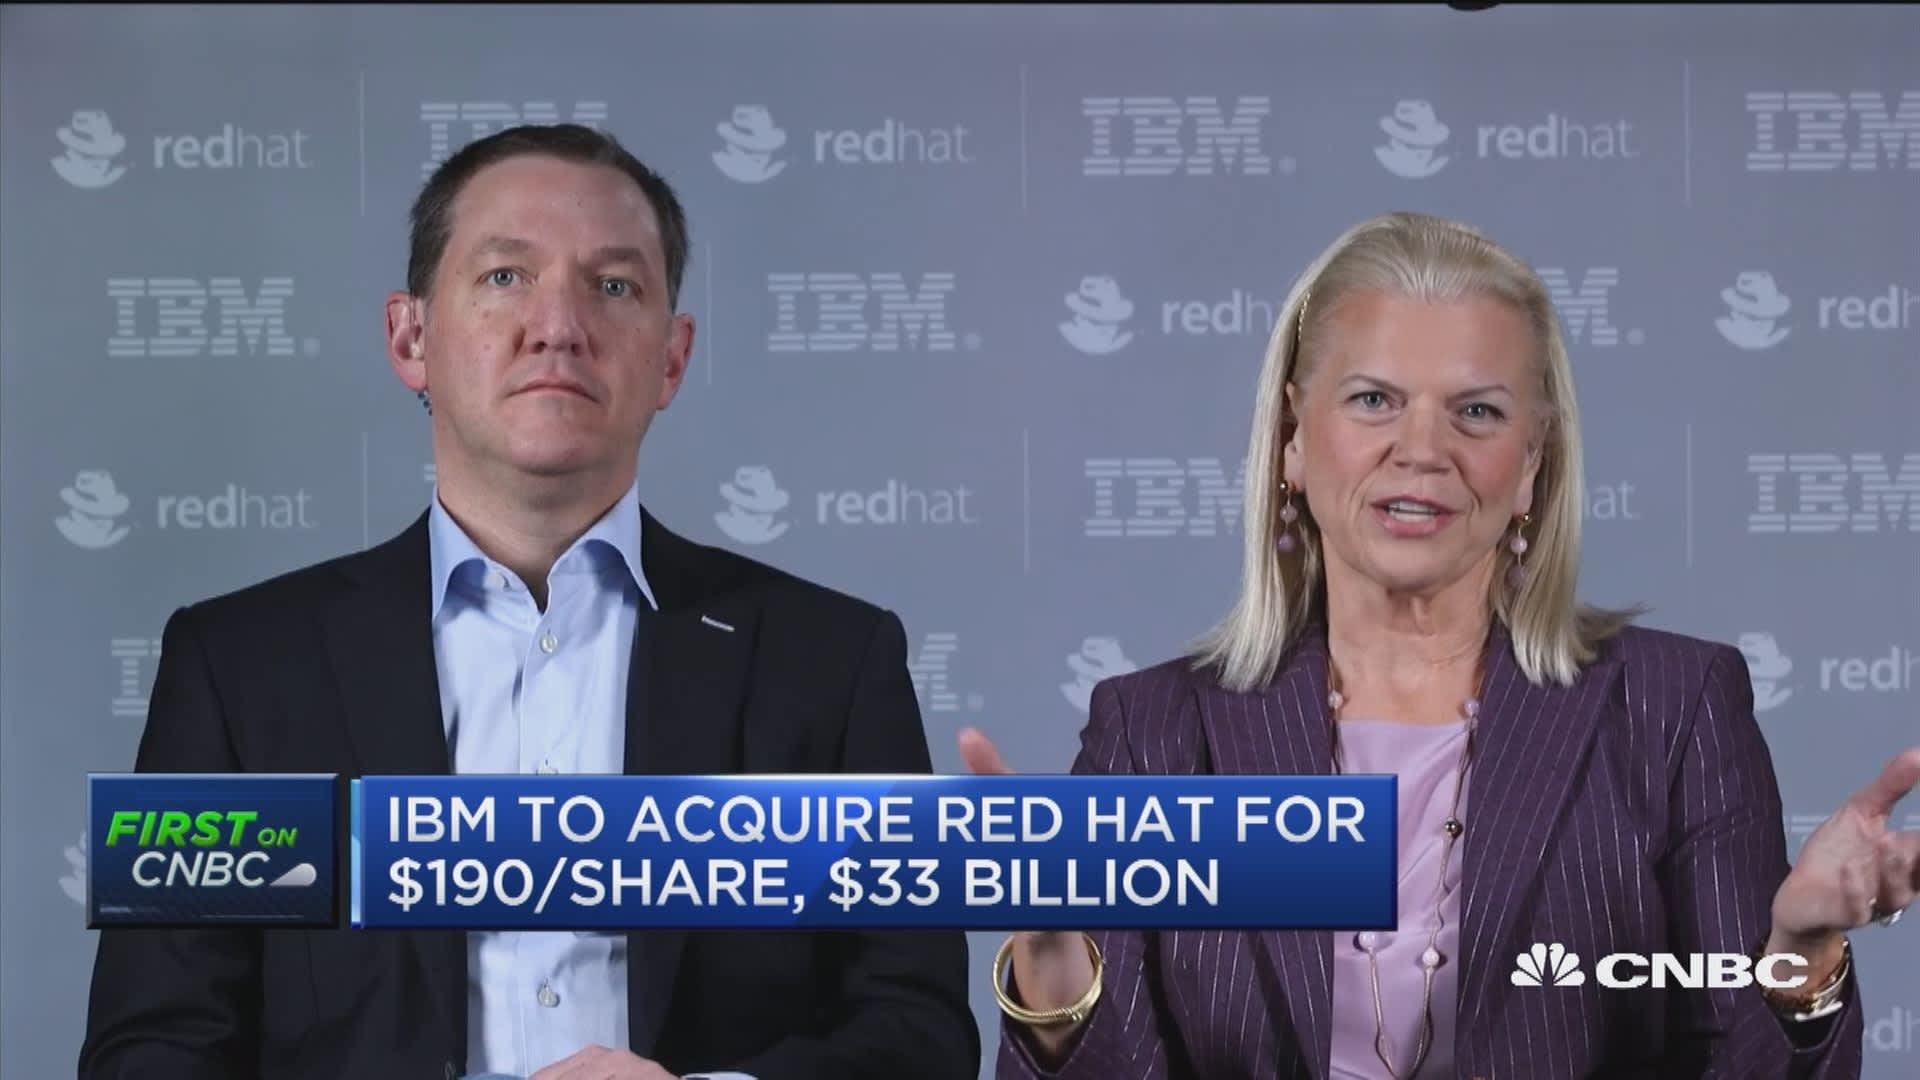 IBM-Red Hat deal is all about resetting the cloud landscape, says IBM CEO  Rometty